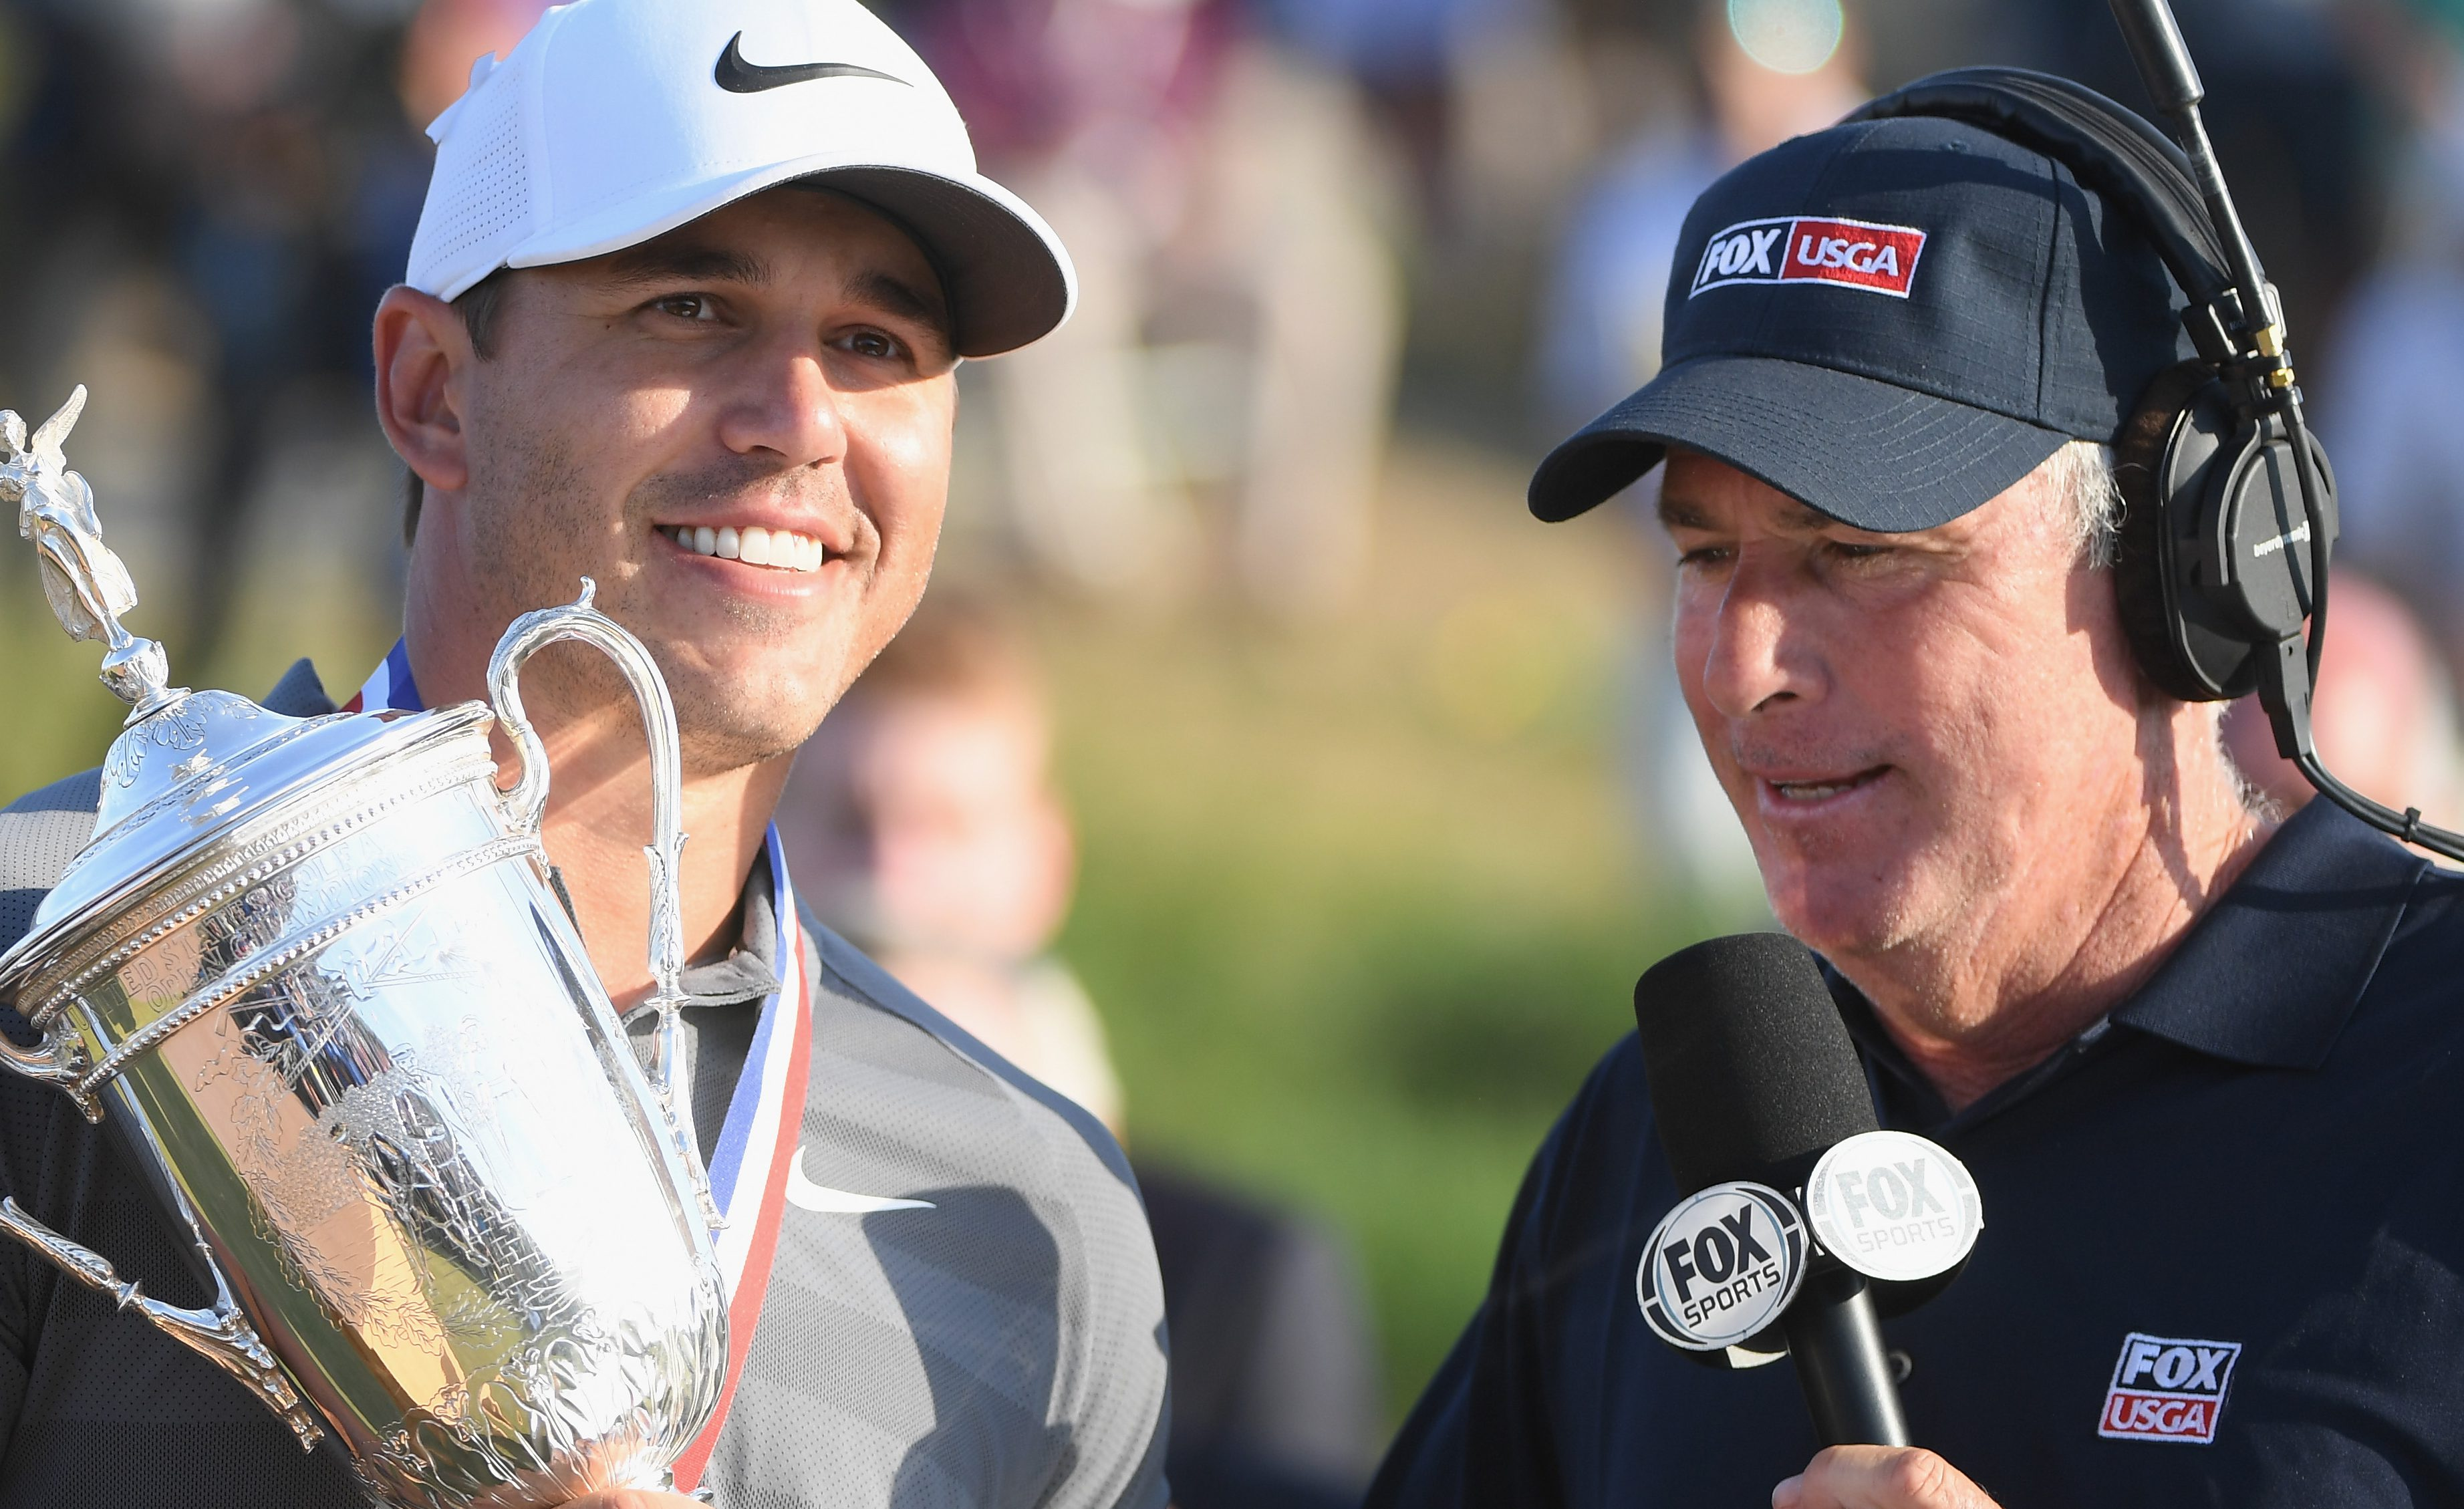 SOUTHAMPTON, NY - JUNE 17: Brooks Koepka of the United States is interviewed during the trophy presentation after winning the 2018 U.S. Open at Shinnecock Hills Golf Club on June 17, 2018 in Southampton, New York. (Photo by Ross Kinnaird/Getty Images)